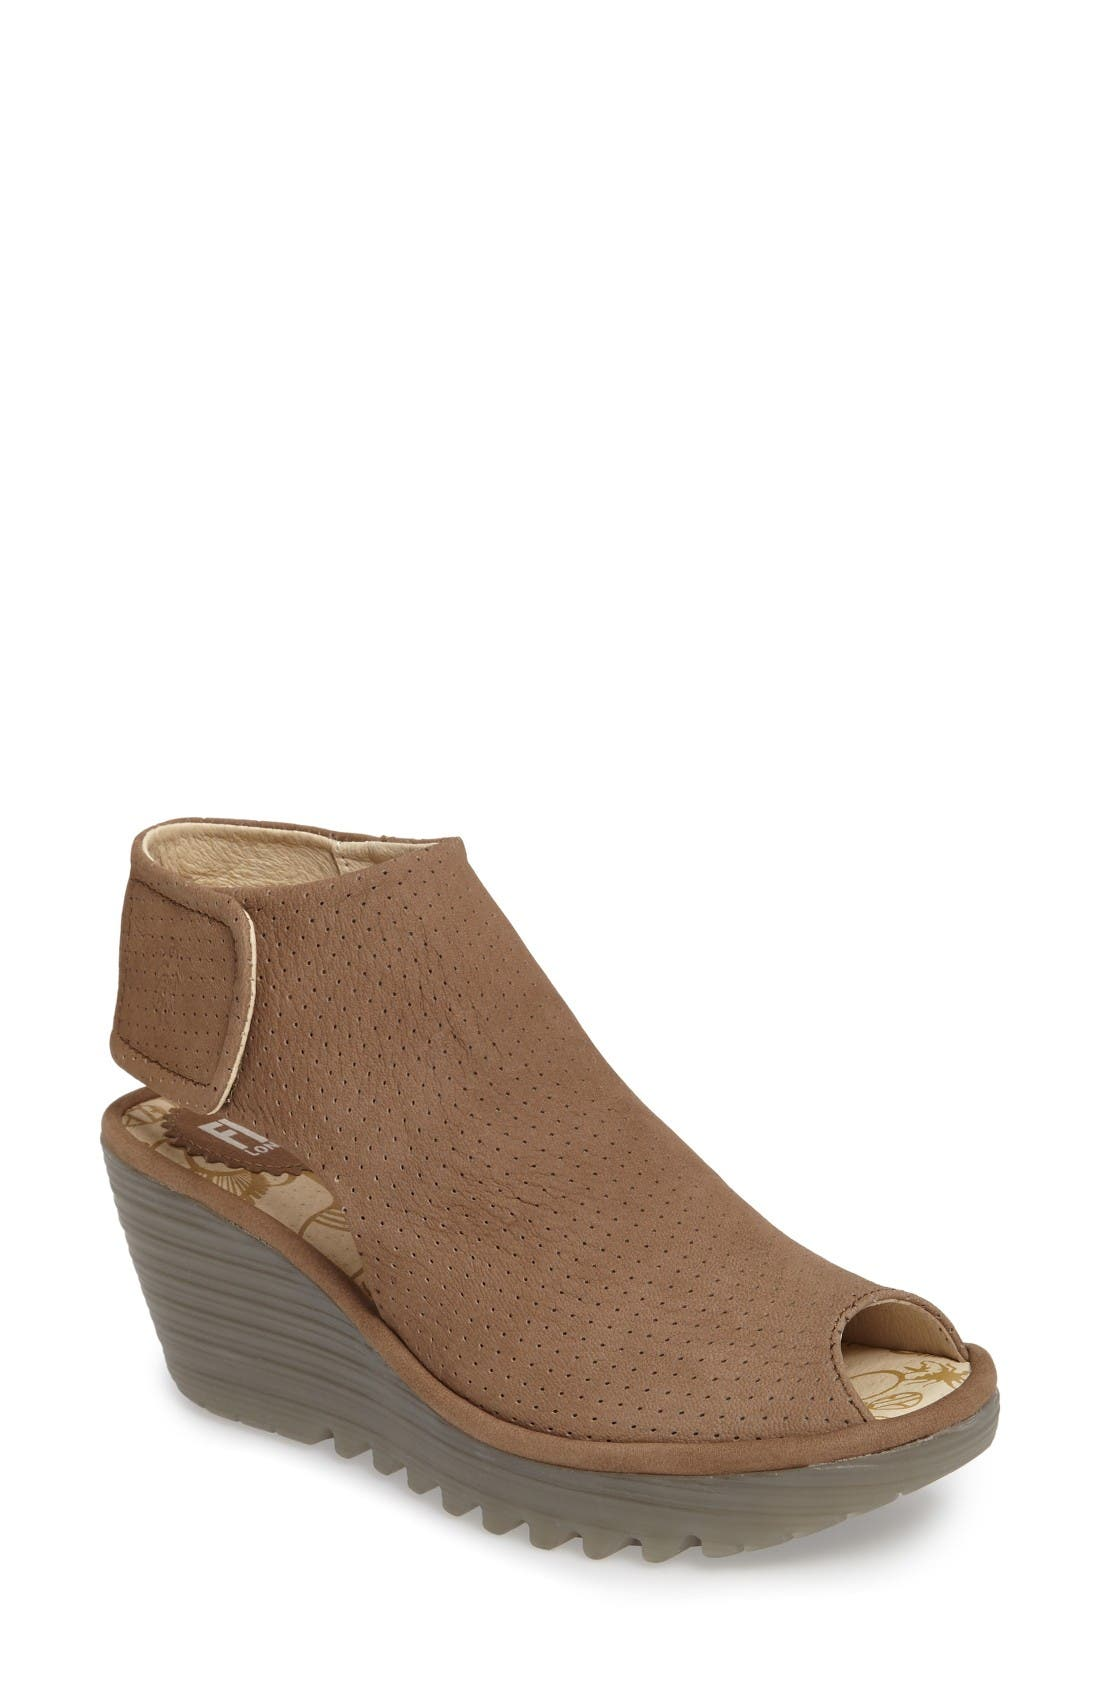 Main Image - Fly London Yahl Open Toe Platform Wedge (Women)